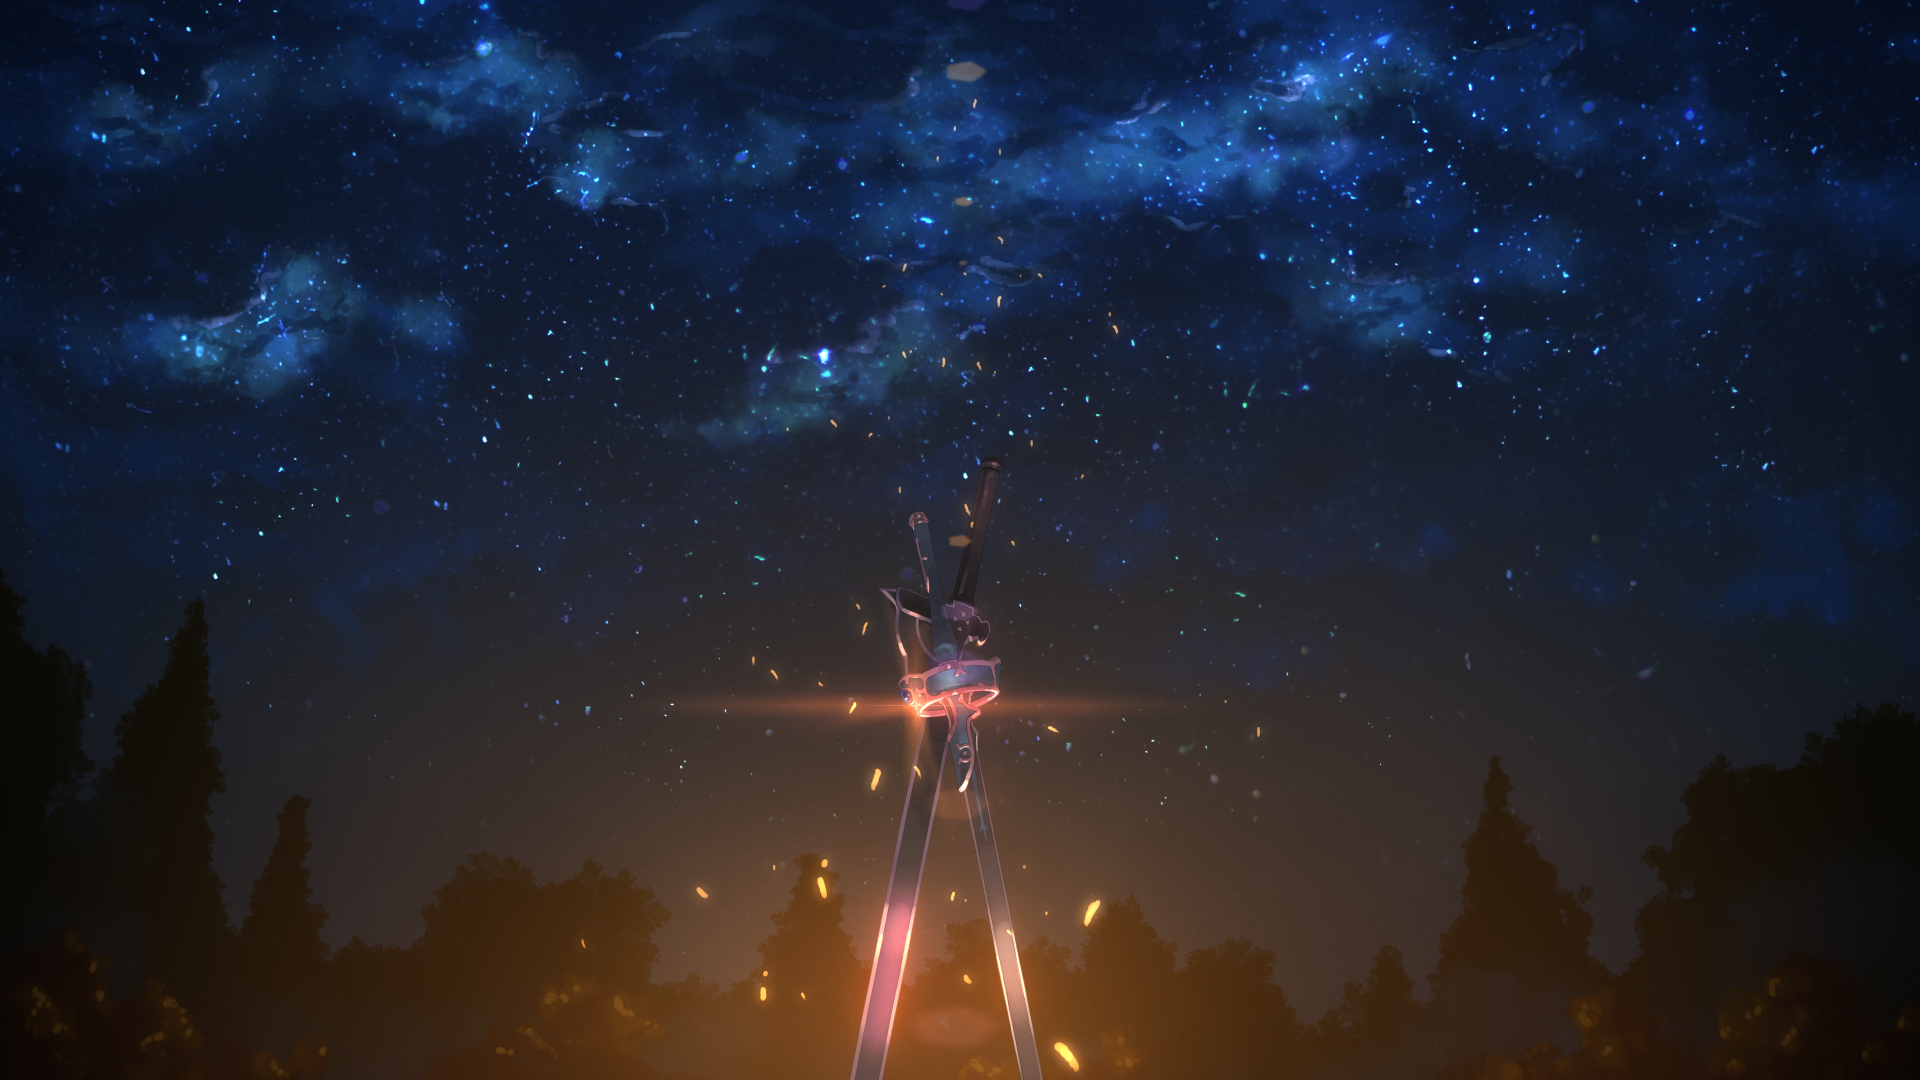 240 4k Ultra Hd Sword Art Online Wallpapers Background Images